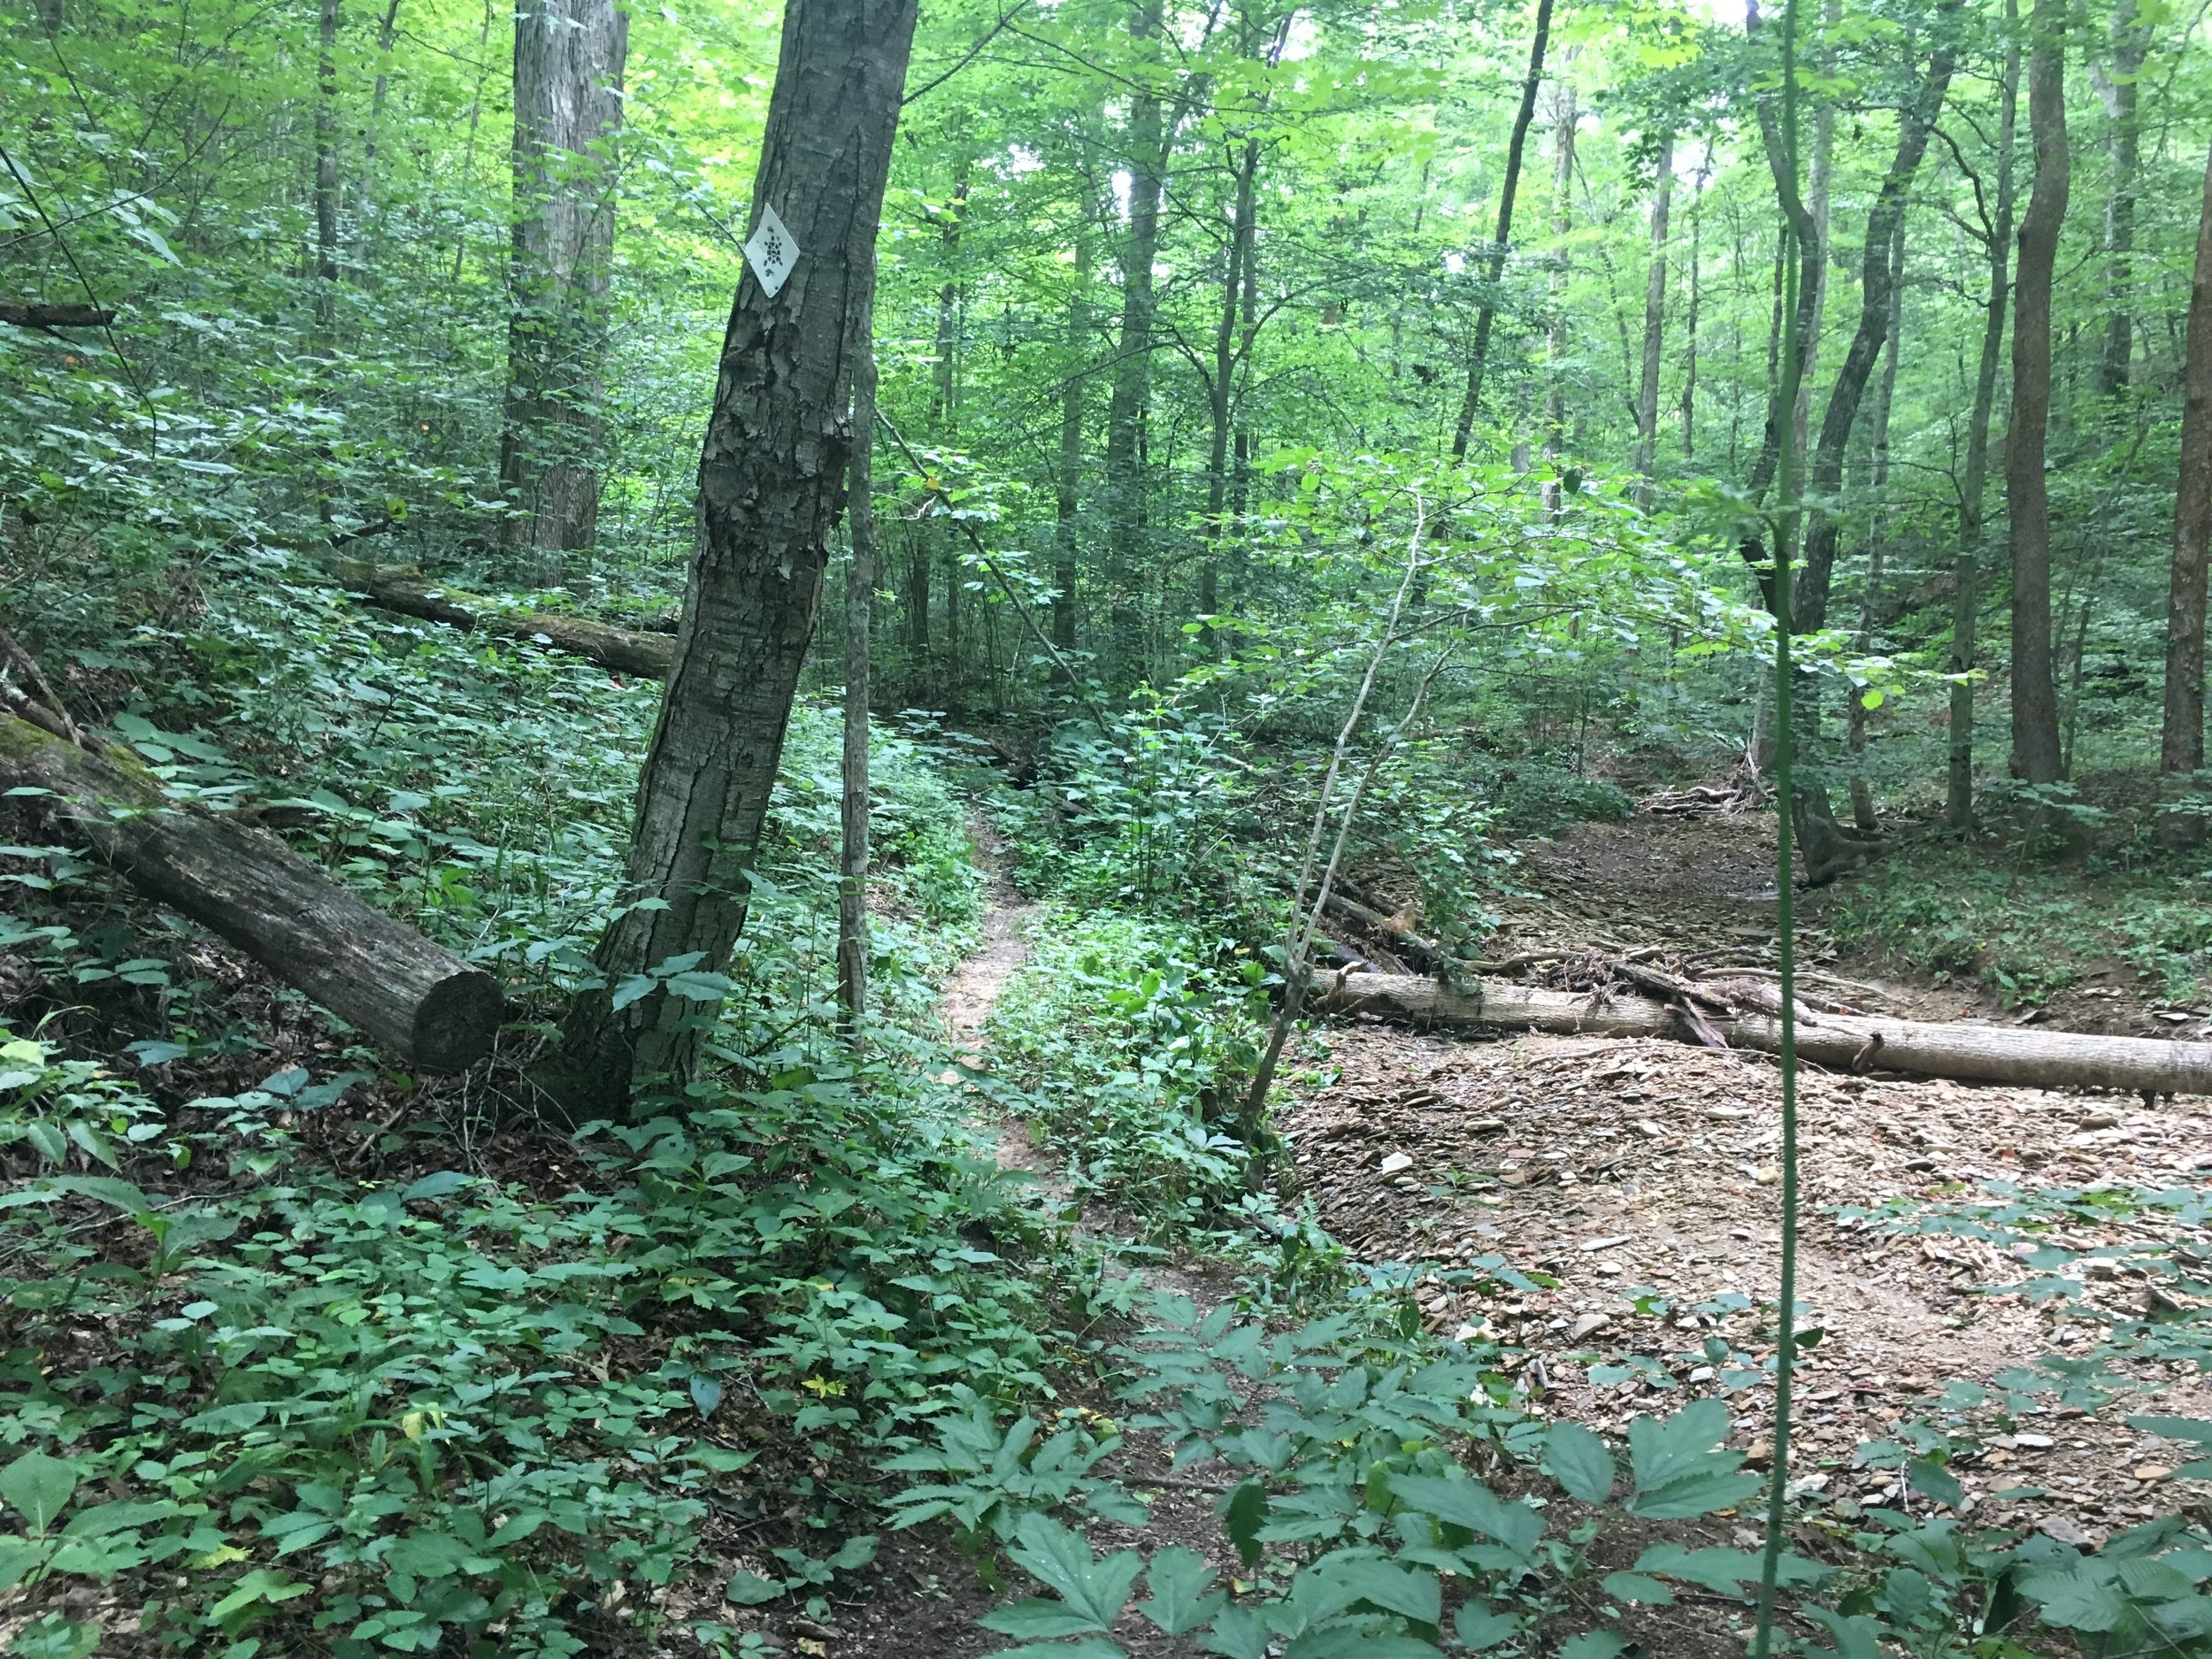 The trail marking here along the Big Turtle 50 Miler course is easy to miss if your eyes aren't moving along the trail.